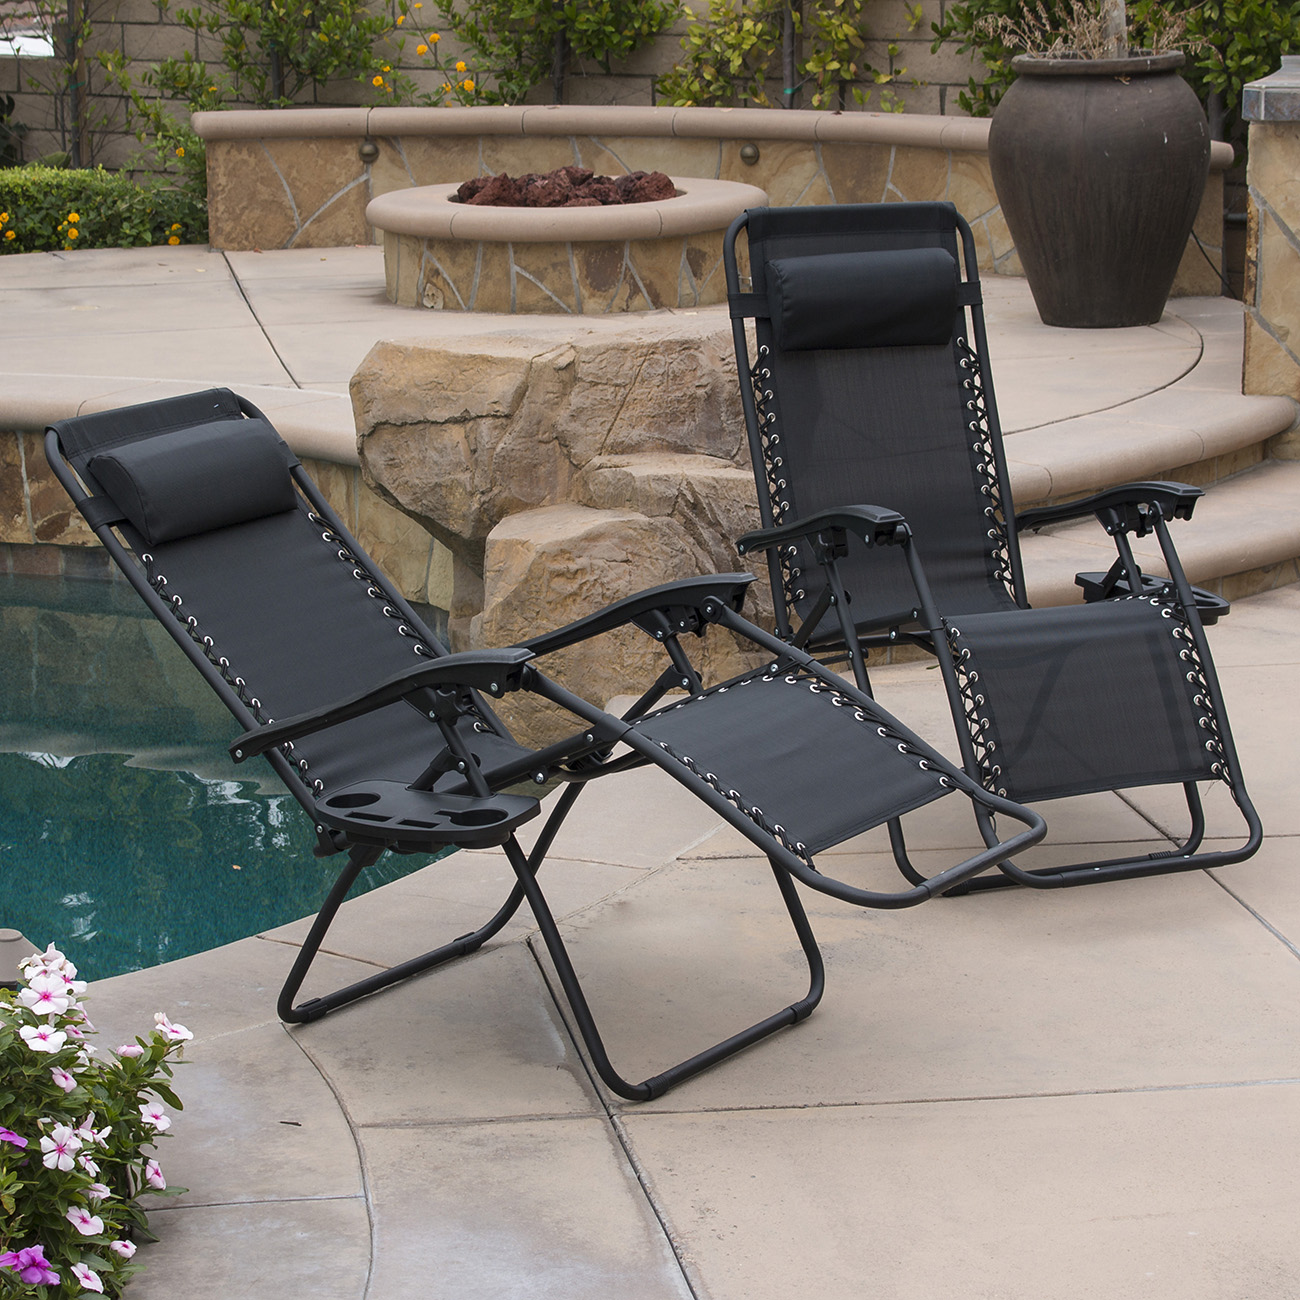 2 Folding Zero Gravity Reclining Lounge Chairs Utility Tray Outdoor